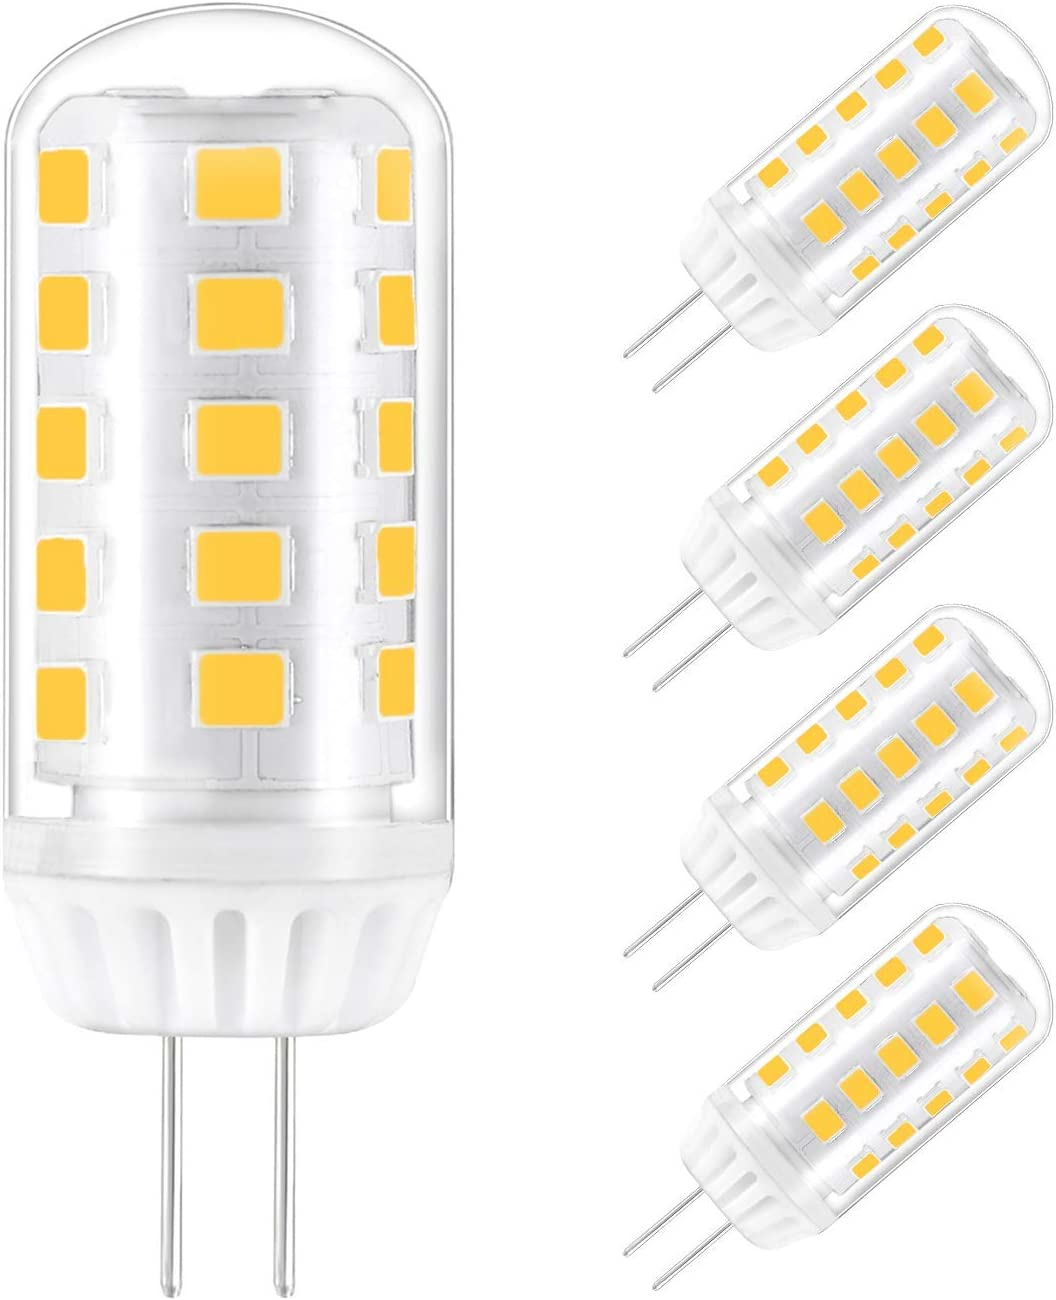 5 Pcs G4 LED Lamp 4W Warm White Bulb Replacement for 40W Halogen Bulbs 12V AC/DC 360 Beam Angle Dimmable [Energy Class A +]